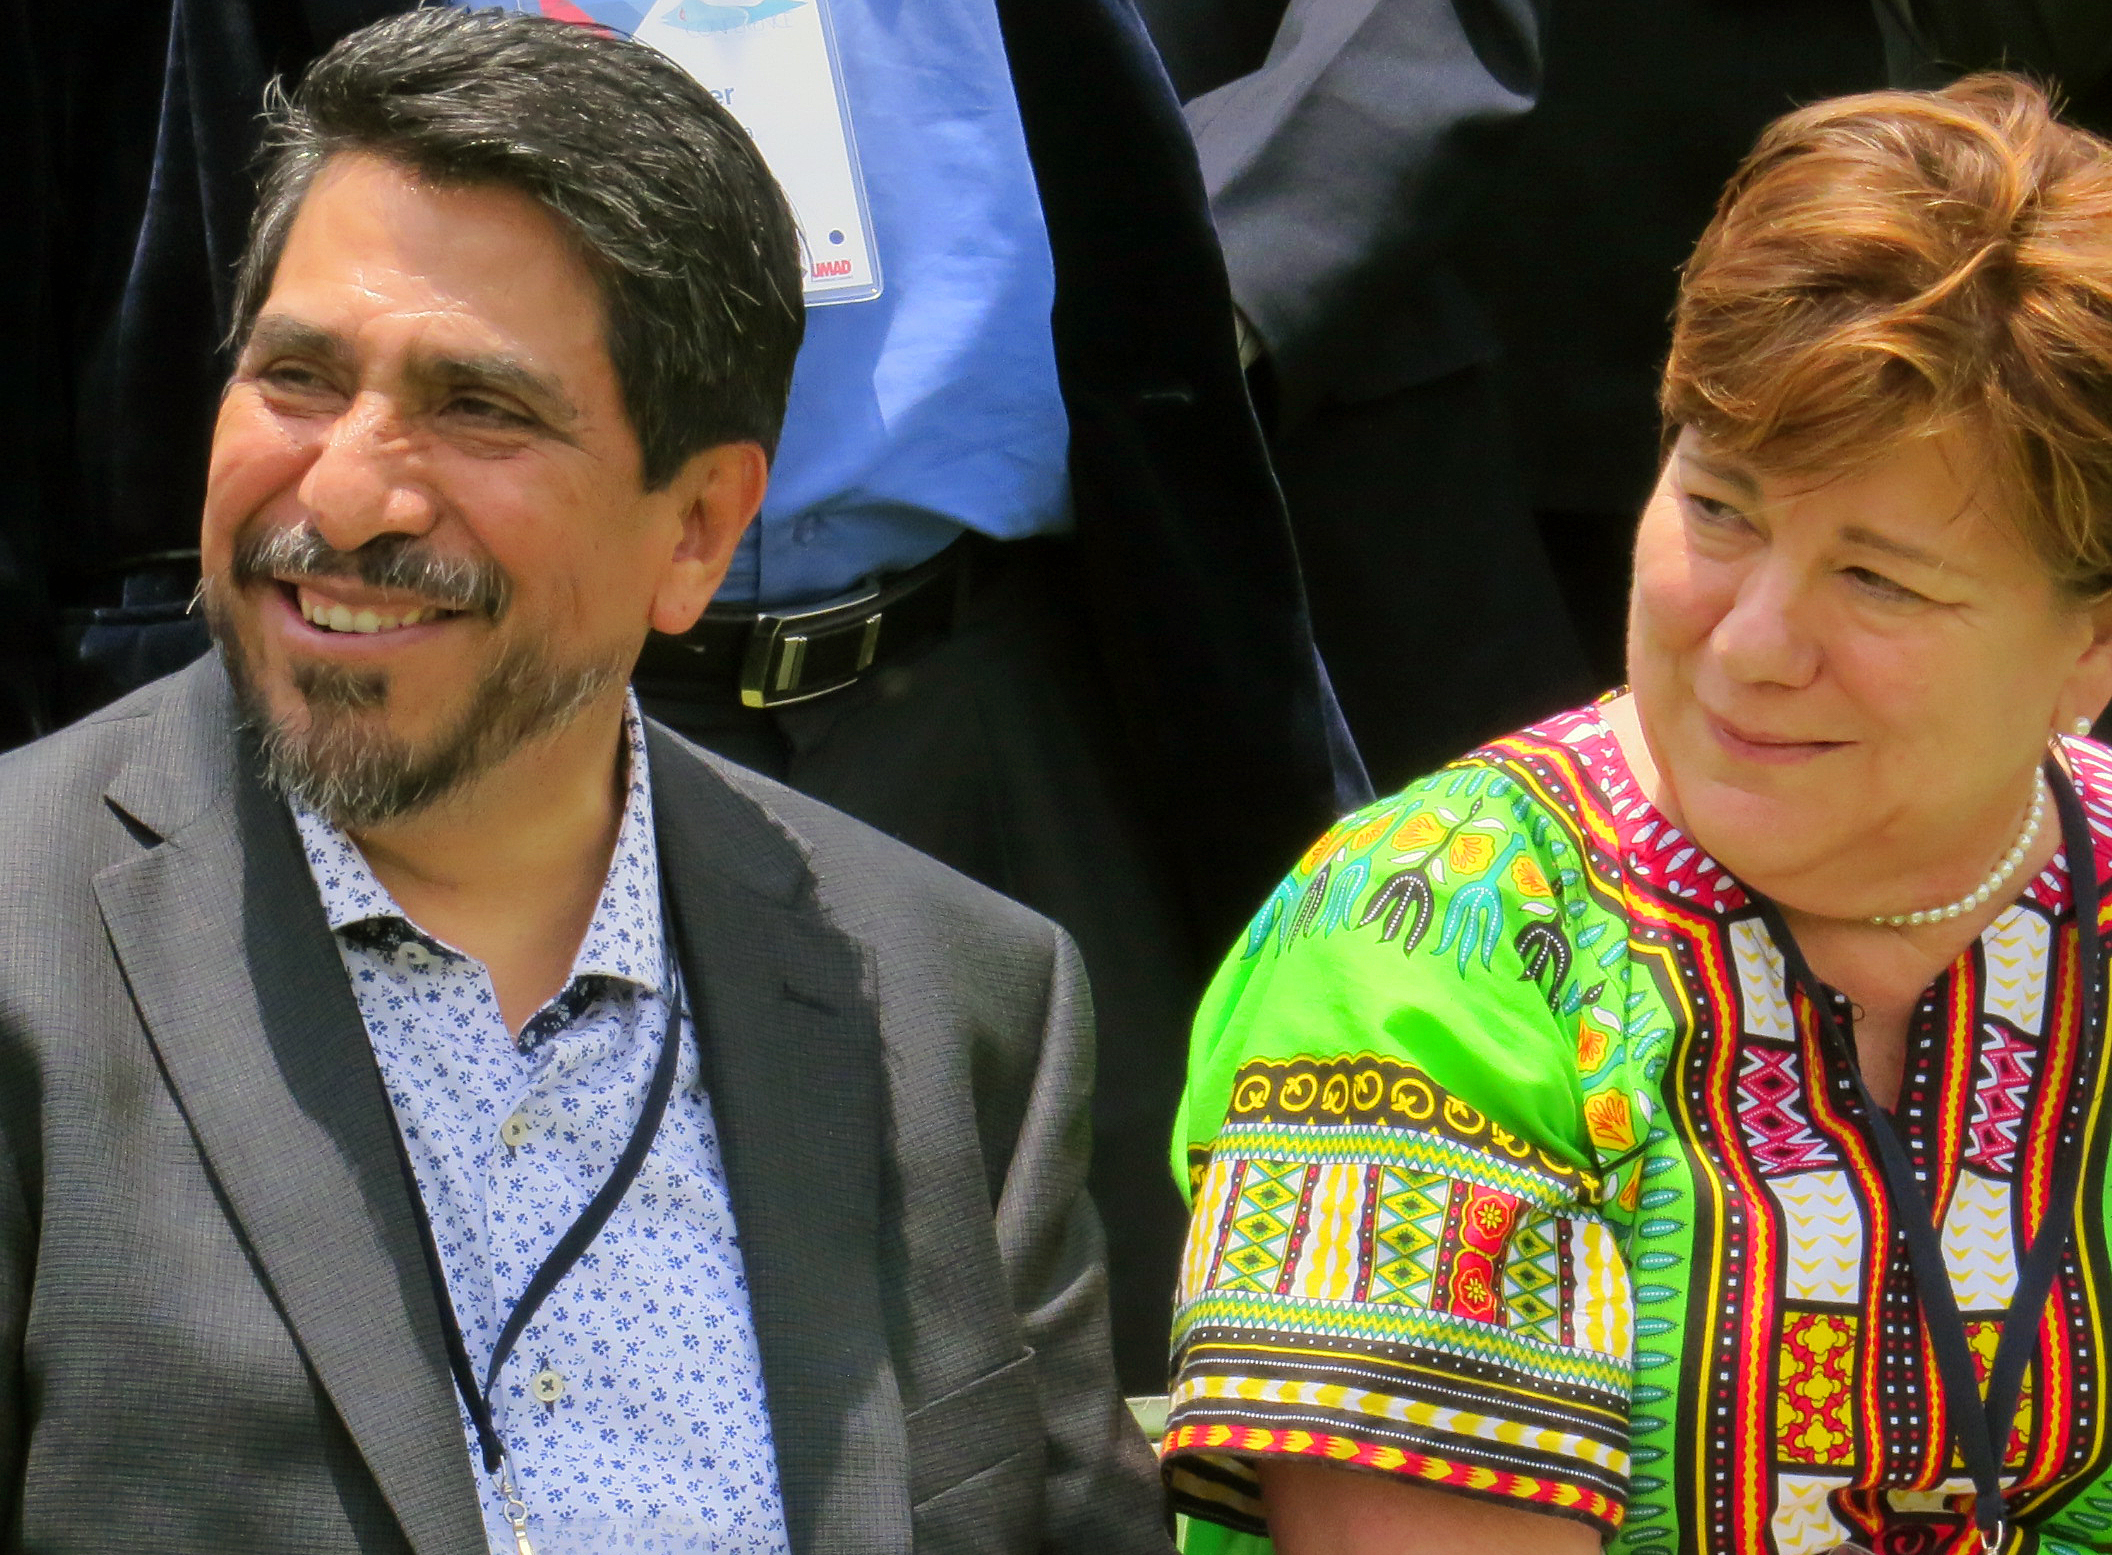 Job Cesar Romero, president of Universidad Madera, and the Rev. Kim Cape, top executive of the United Methodist Board of Higher Education and Ministry, visit before a May 28 group photo shot at the International Association of Methodist-related Schools, Colleges and Universities conference in Puebla, Mexico. Universidad Madero, a Methodist school, is hosting the event. Photo by Sam Hodges, UMNS.